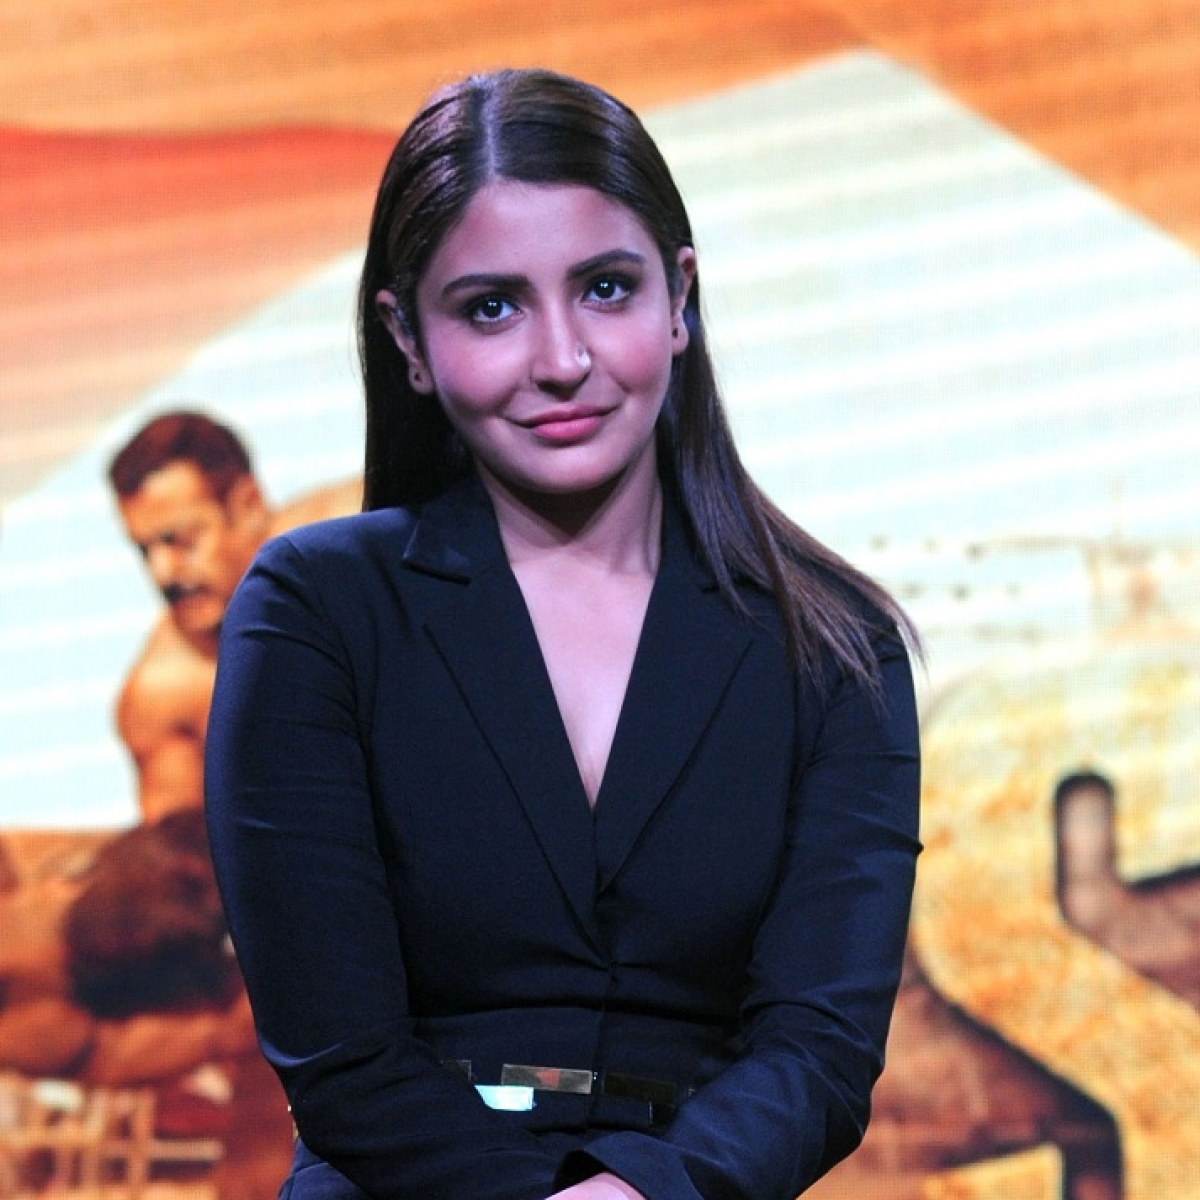 It's of prime importance to me I'm known for my work, says Anushka Sharma